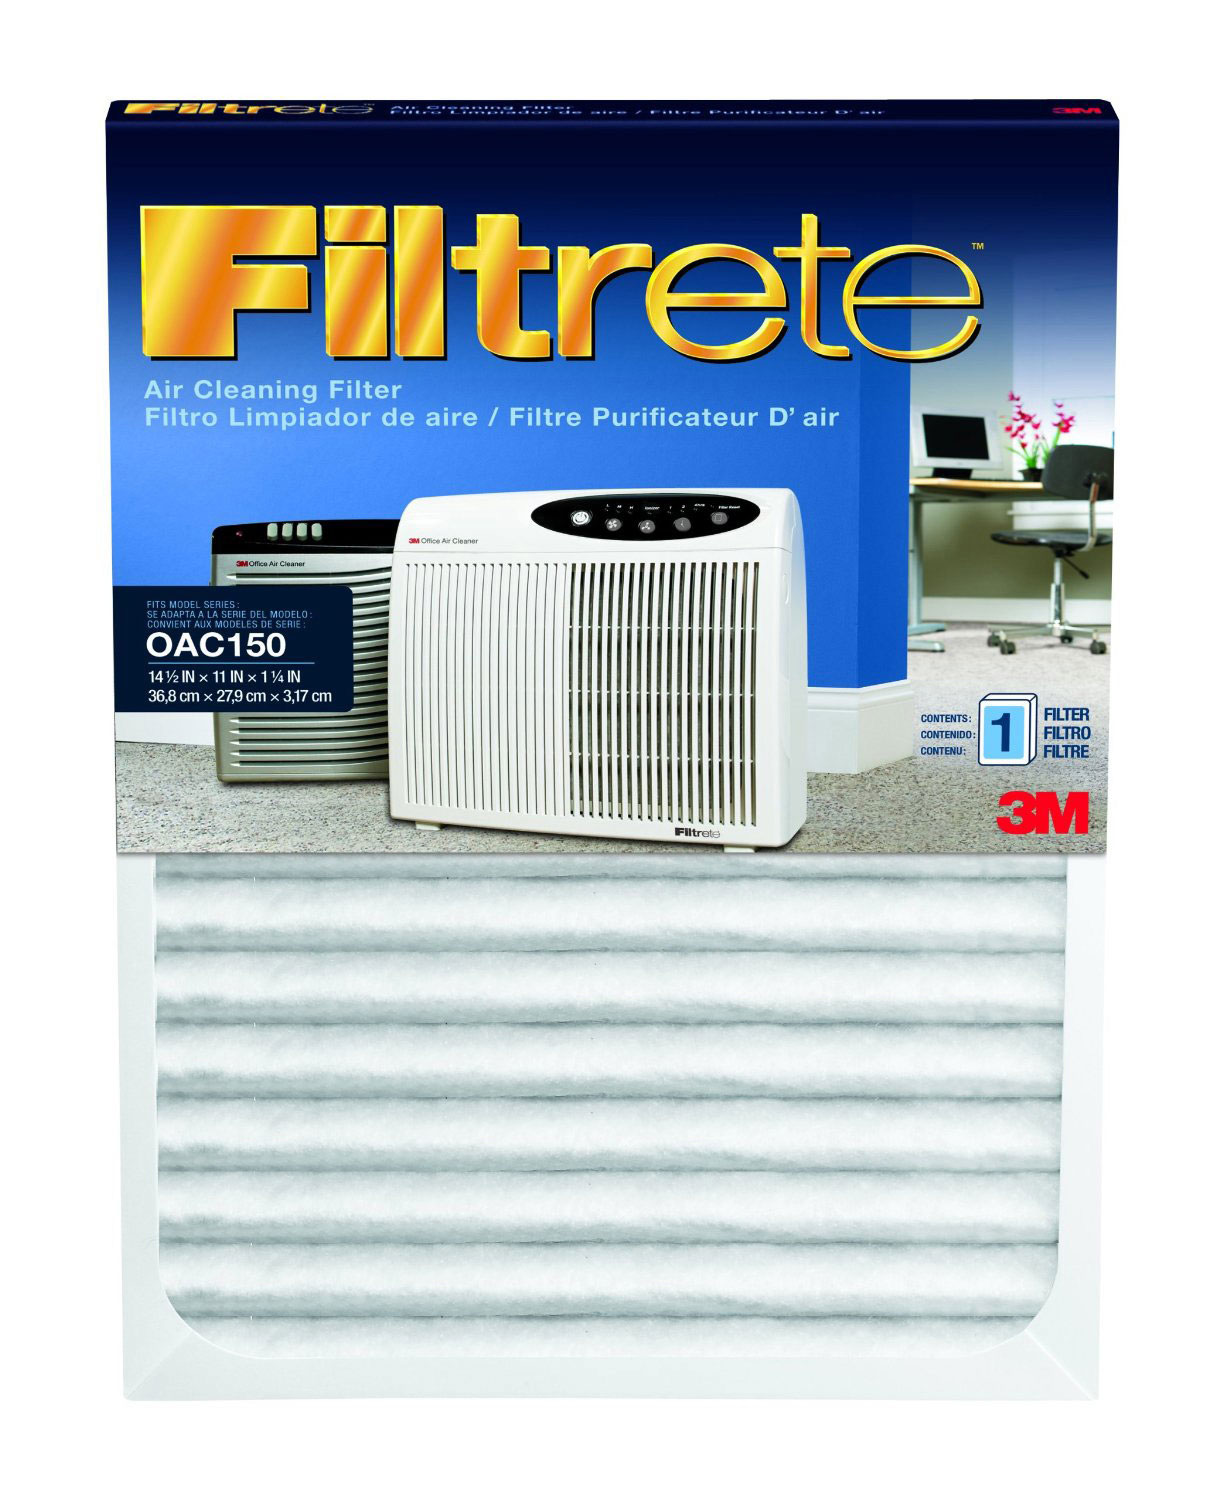 OAC150RF-6 3M Filtrete Office Air Purifier Replacement Filters (6-Pack) FILTRETE_OAC150RF_6_PACK